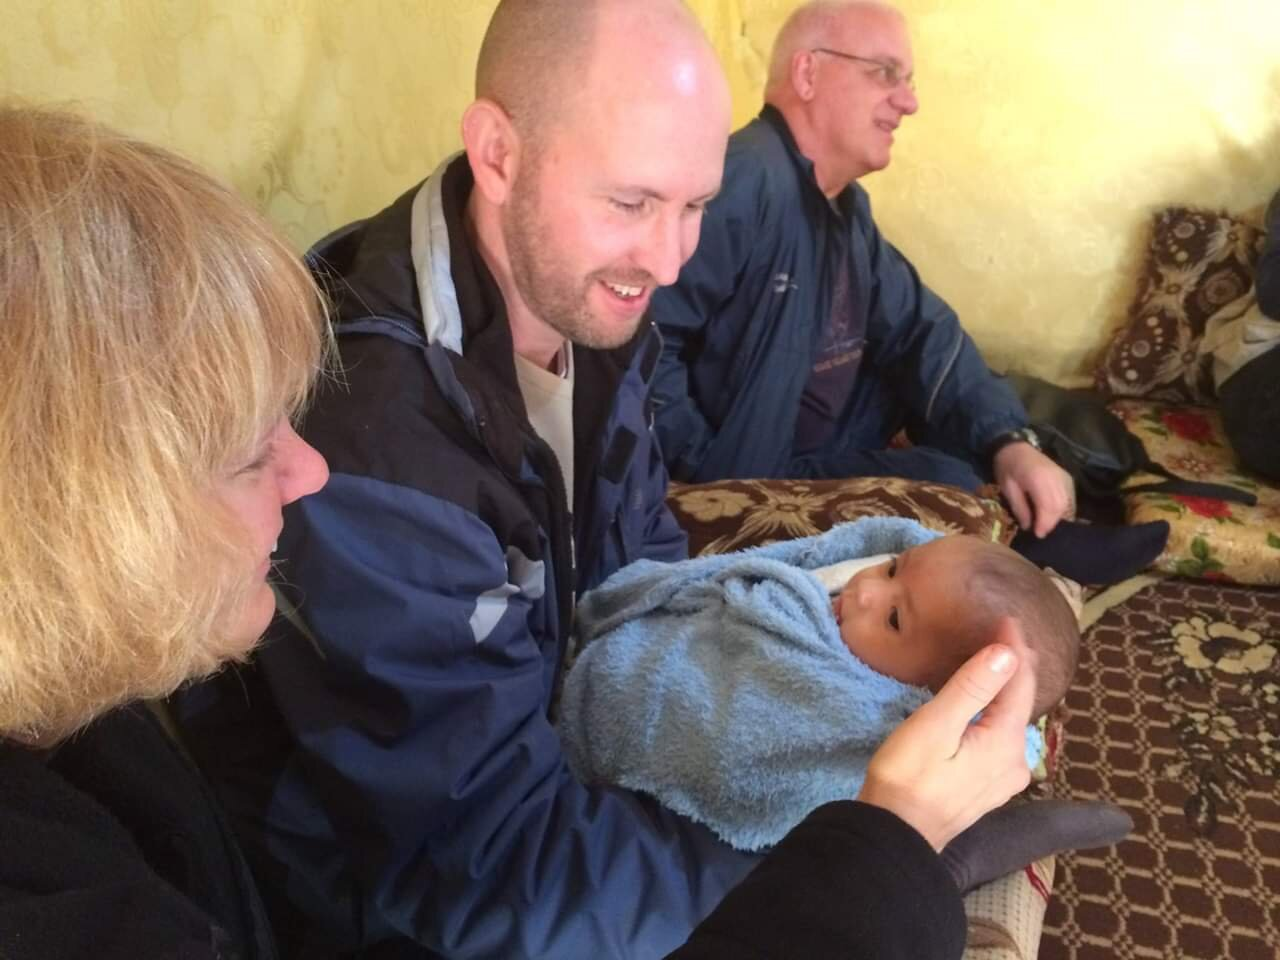 Visiting a Syrian refugee family in the Beqaa Valley, Lebanon (January 2015)